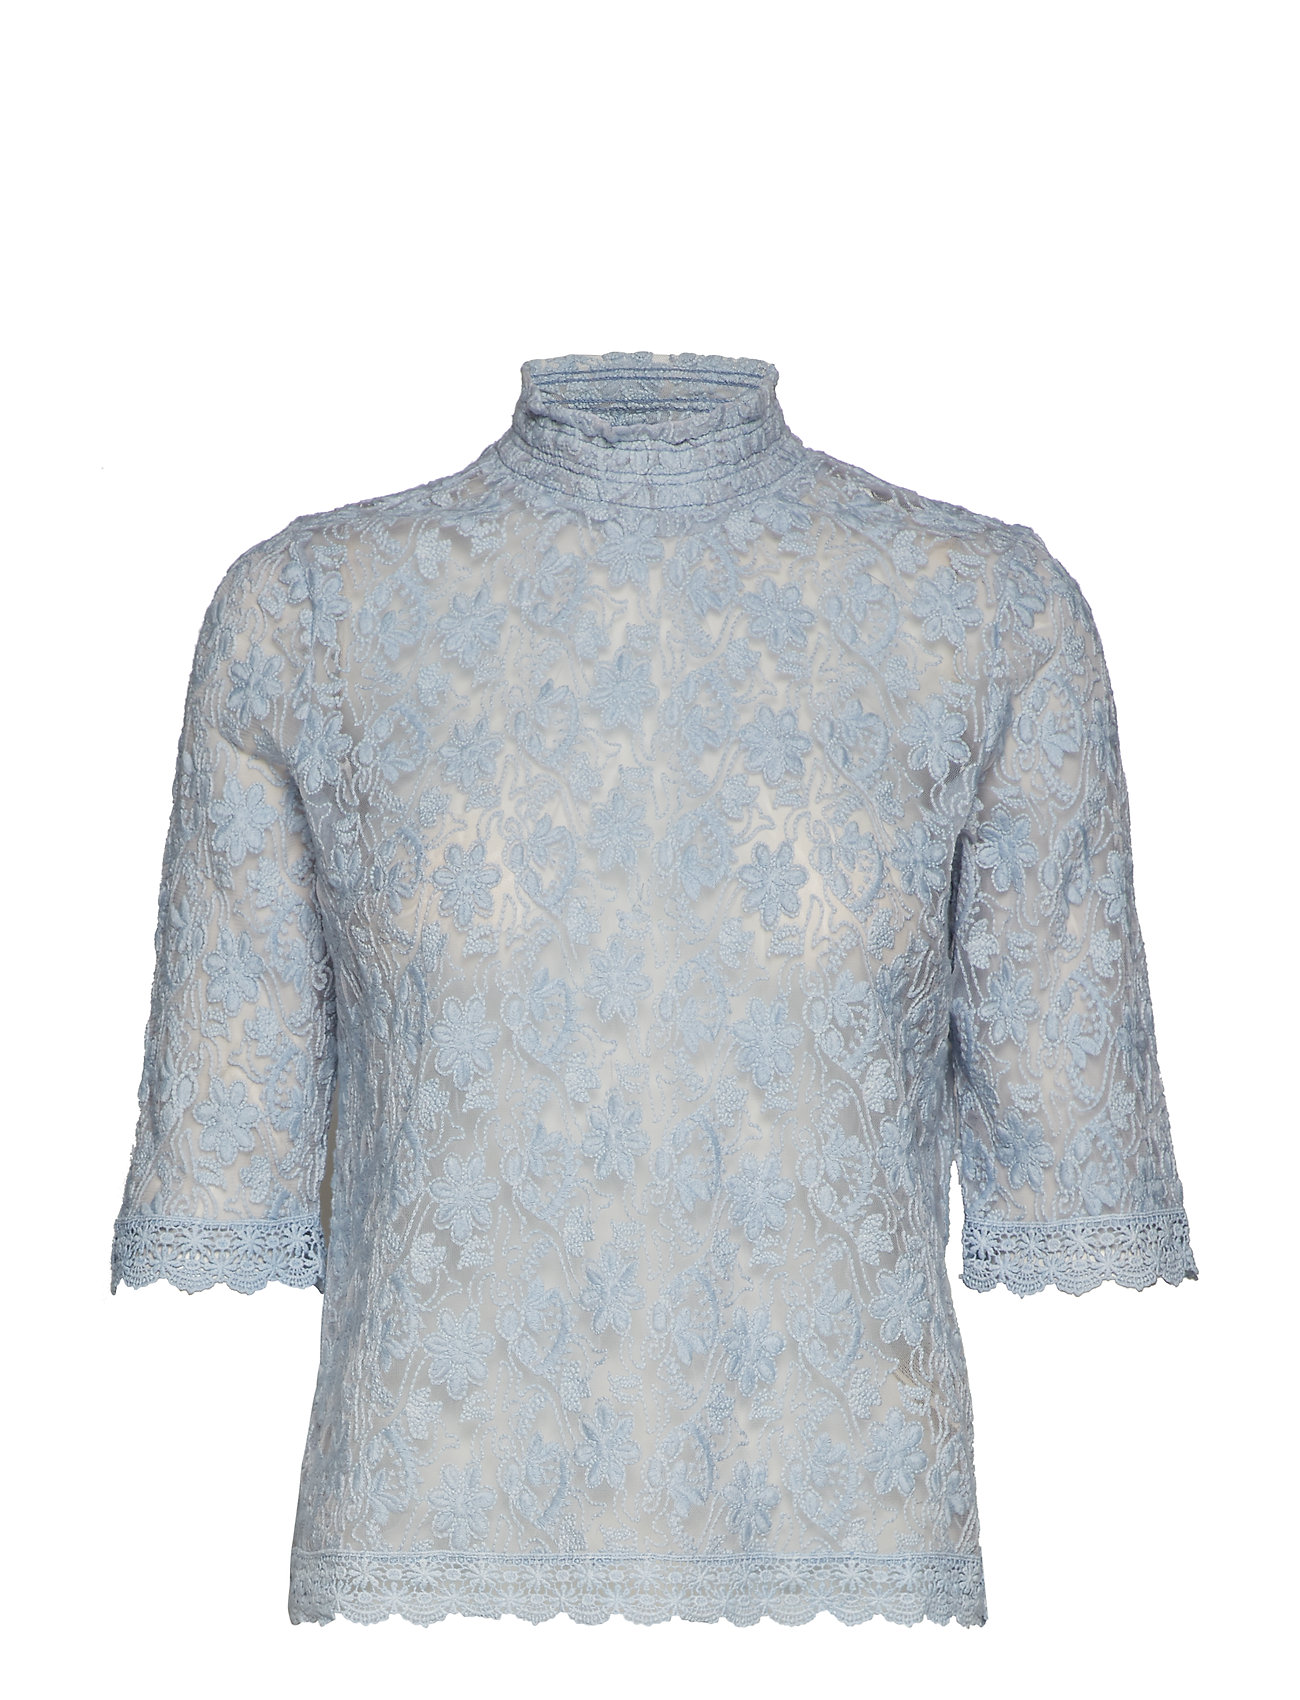 ODD MOLLY sway high blouse - BLOUSE BLUE